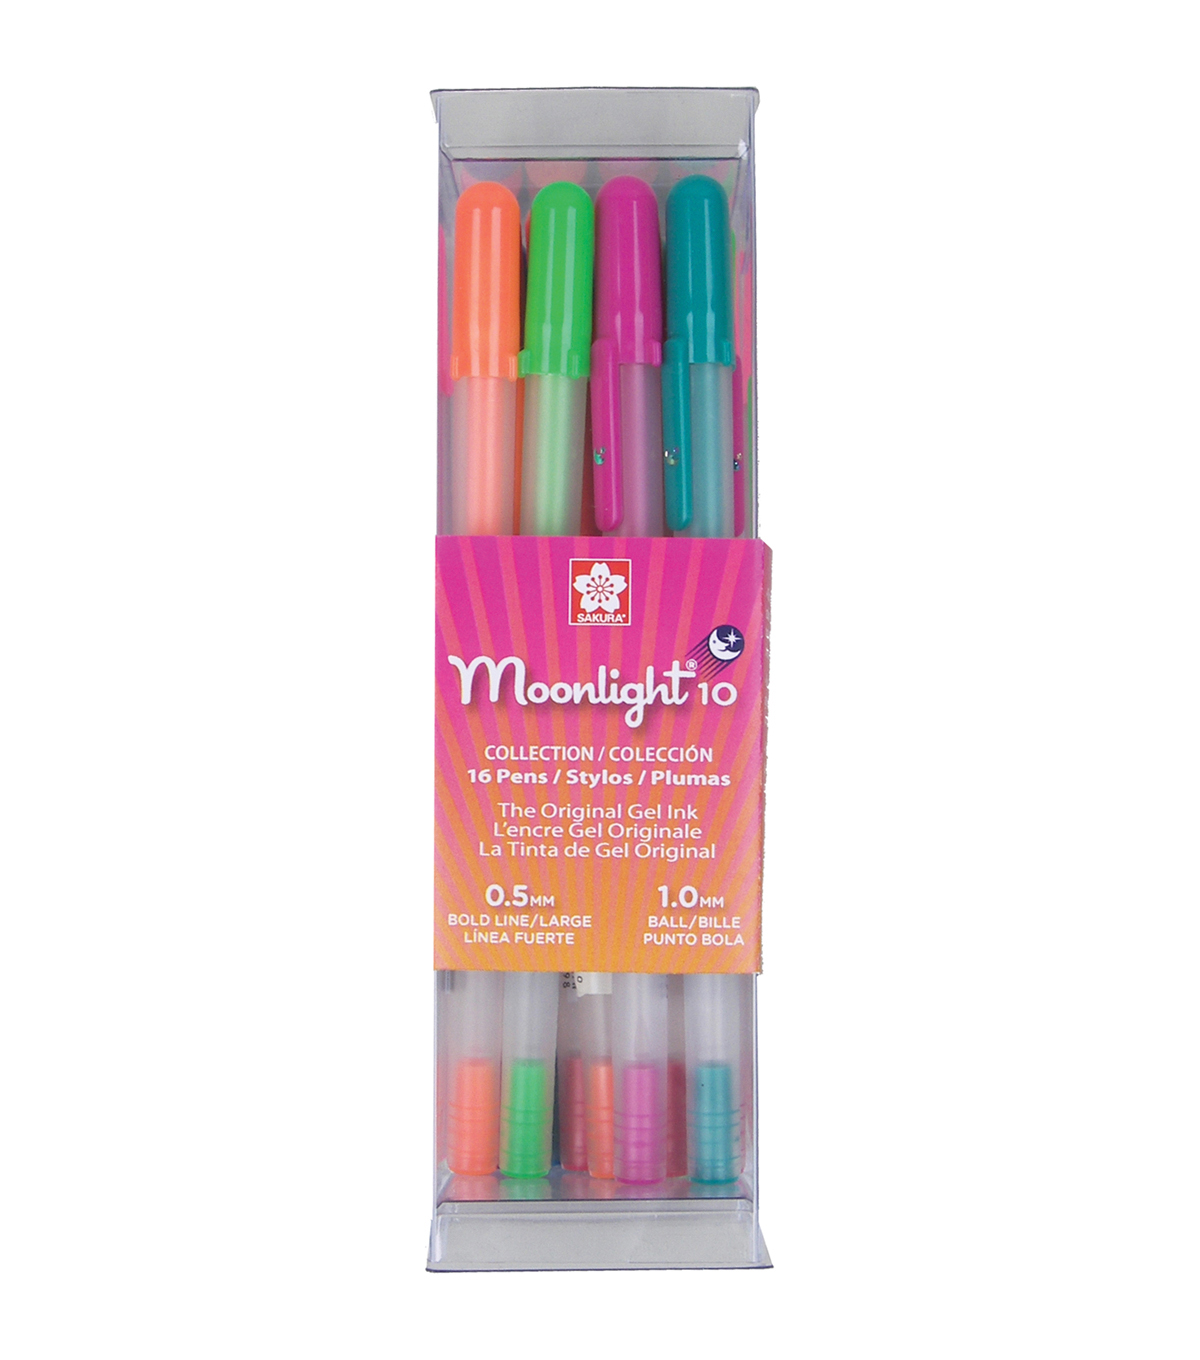 Gelly Roll Moonlight 10 16/Pkg-Bold Point